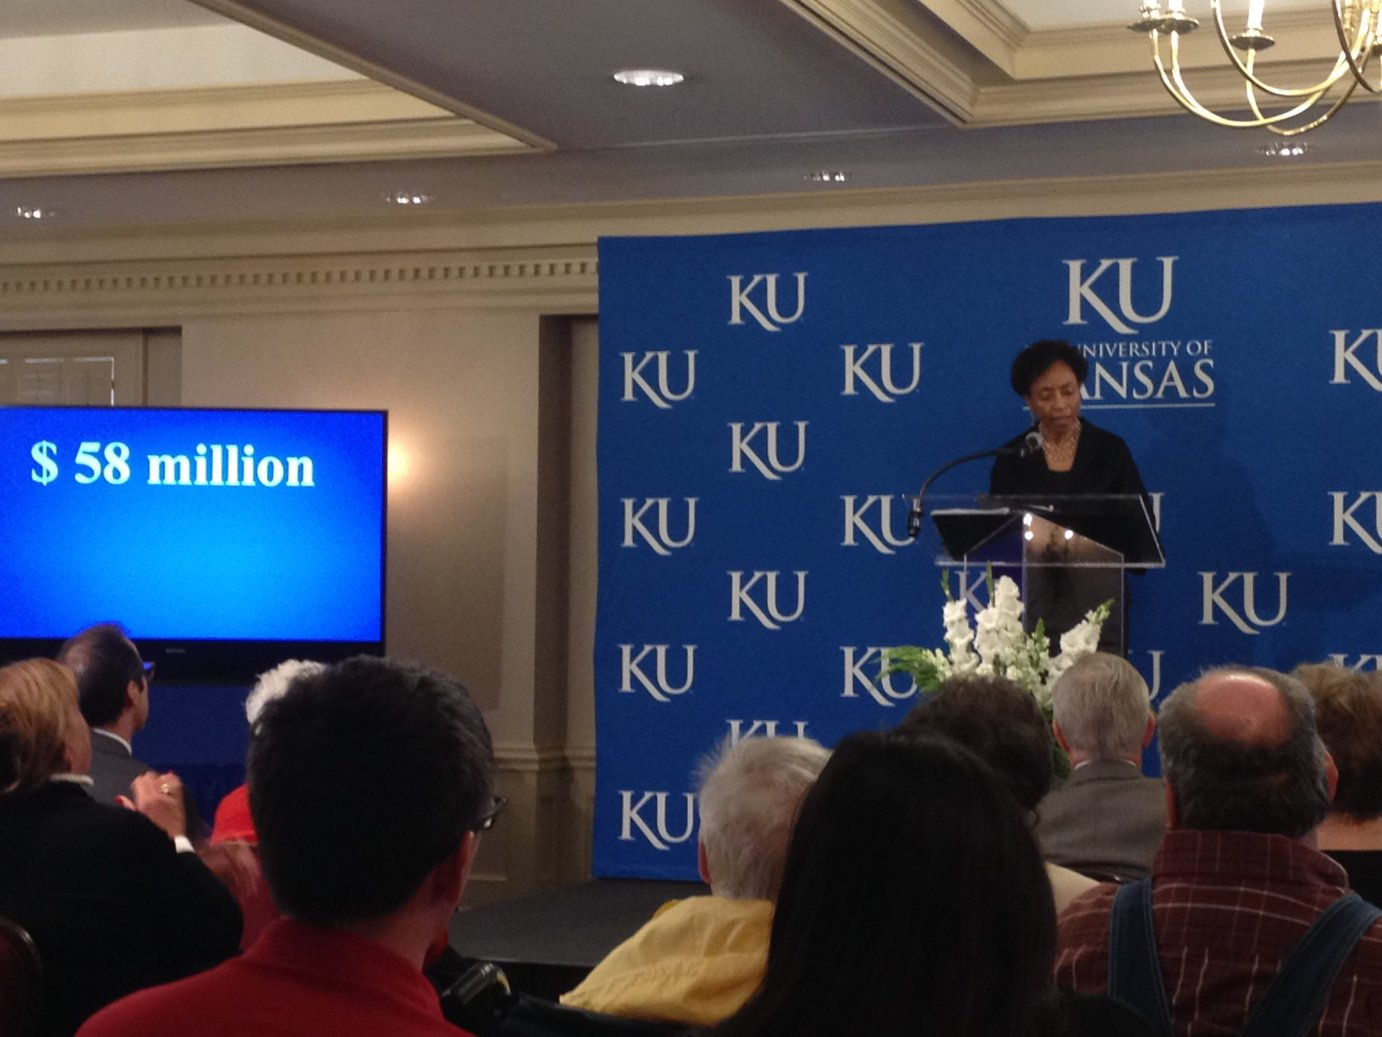 KU Chancellor Bernadette Gray-Little announcing the $58 million gift from the Self family estate during a news conference at the Adams Alumni Center. (Photo by J. Schafer)